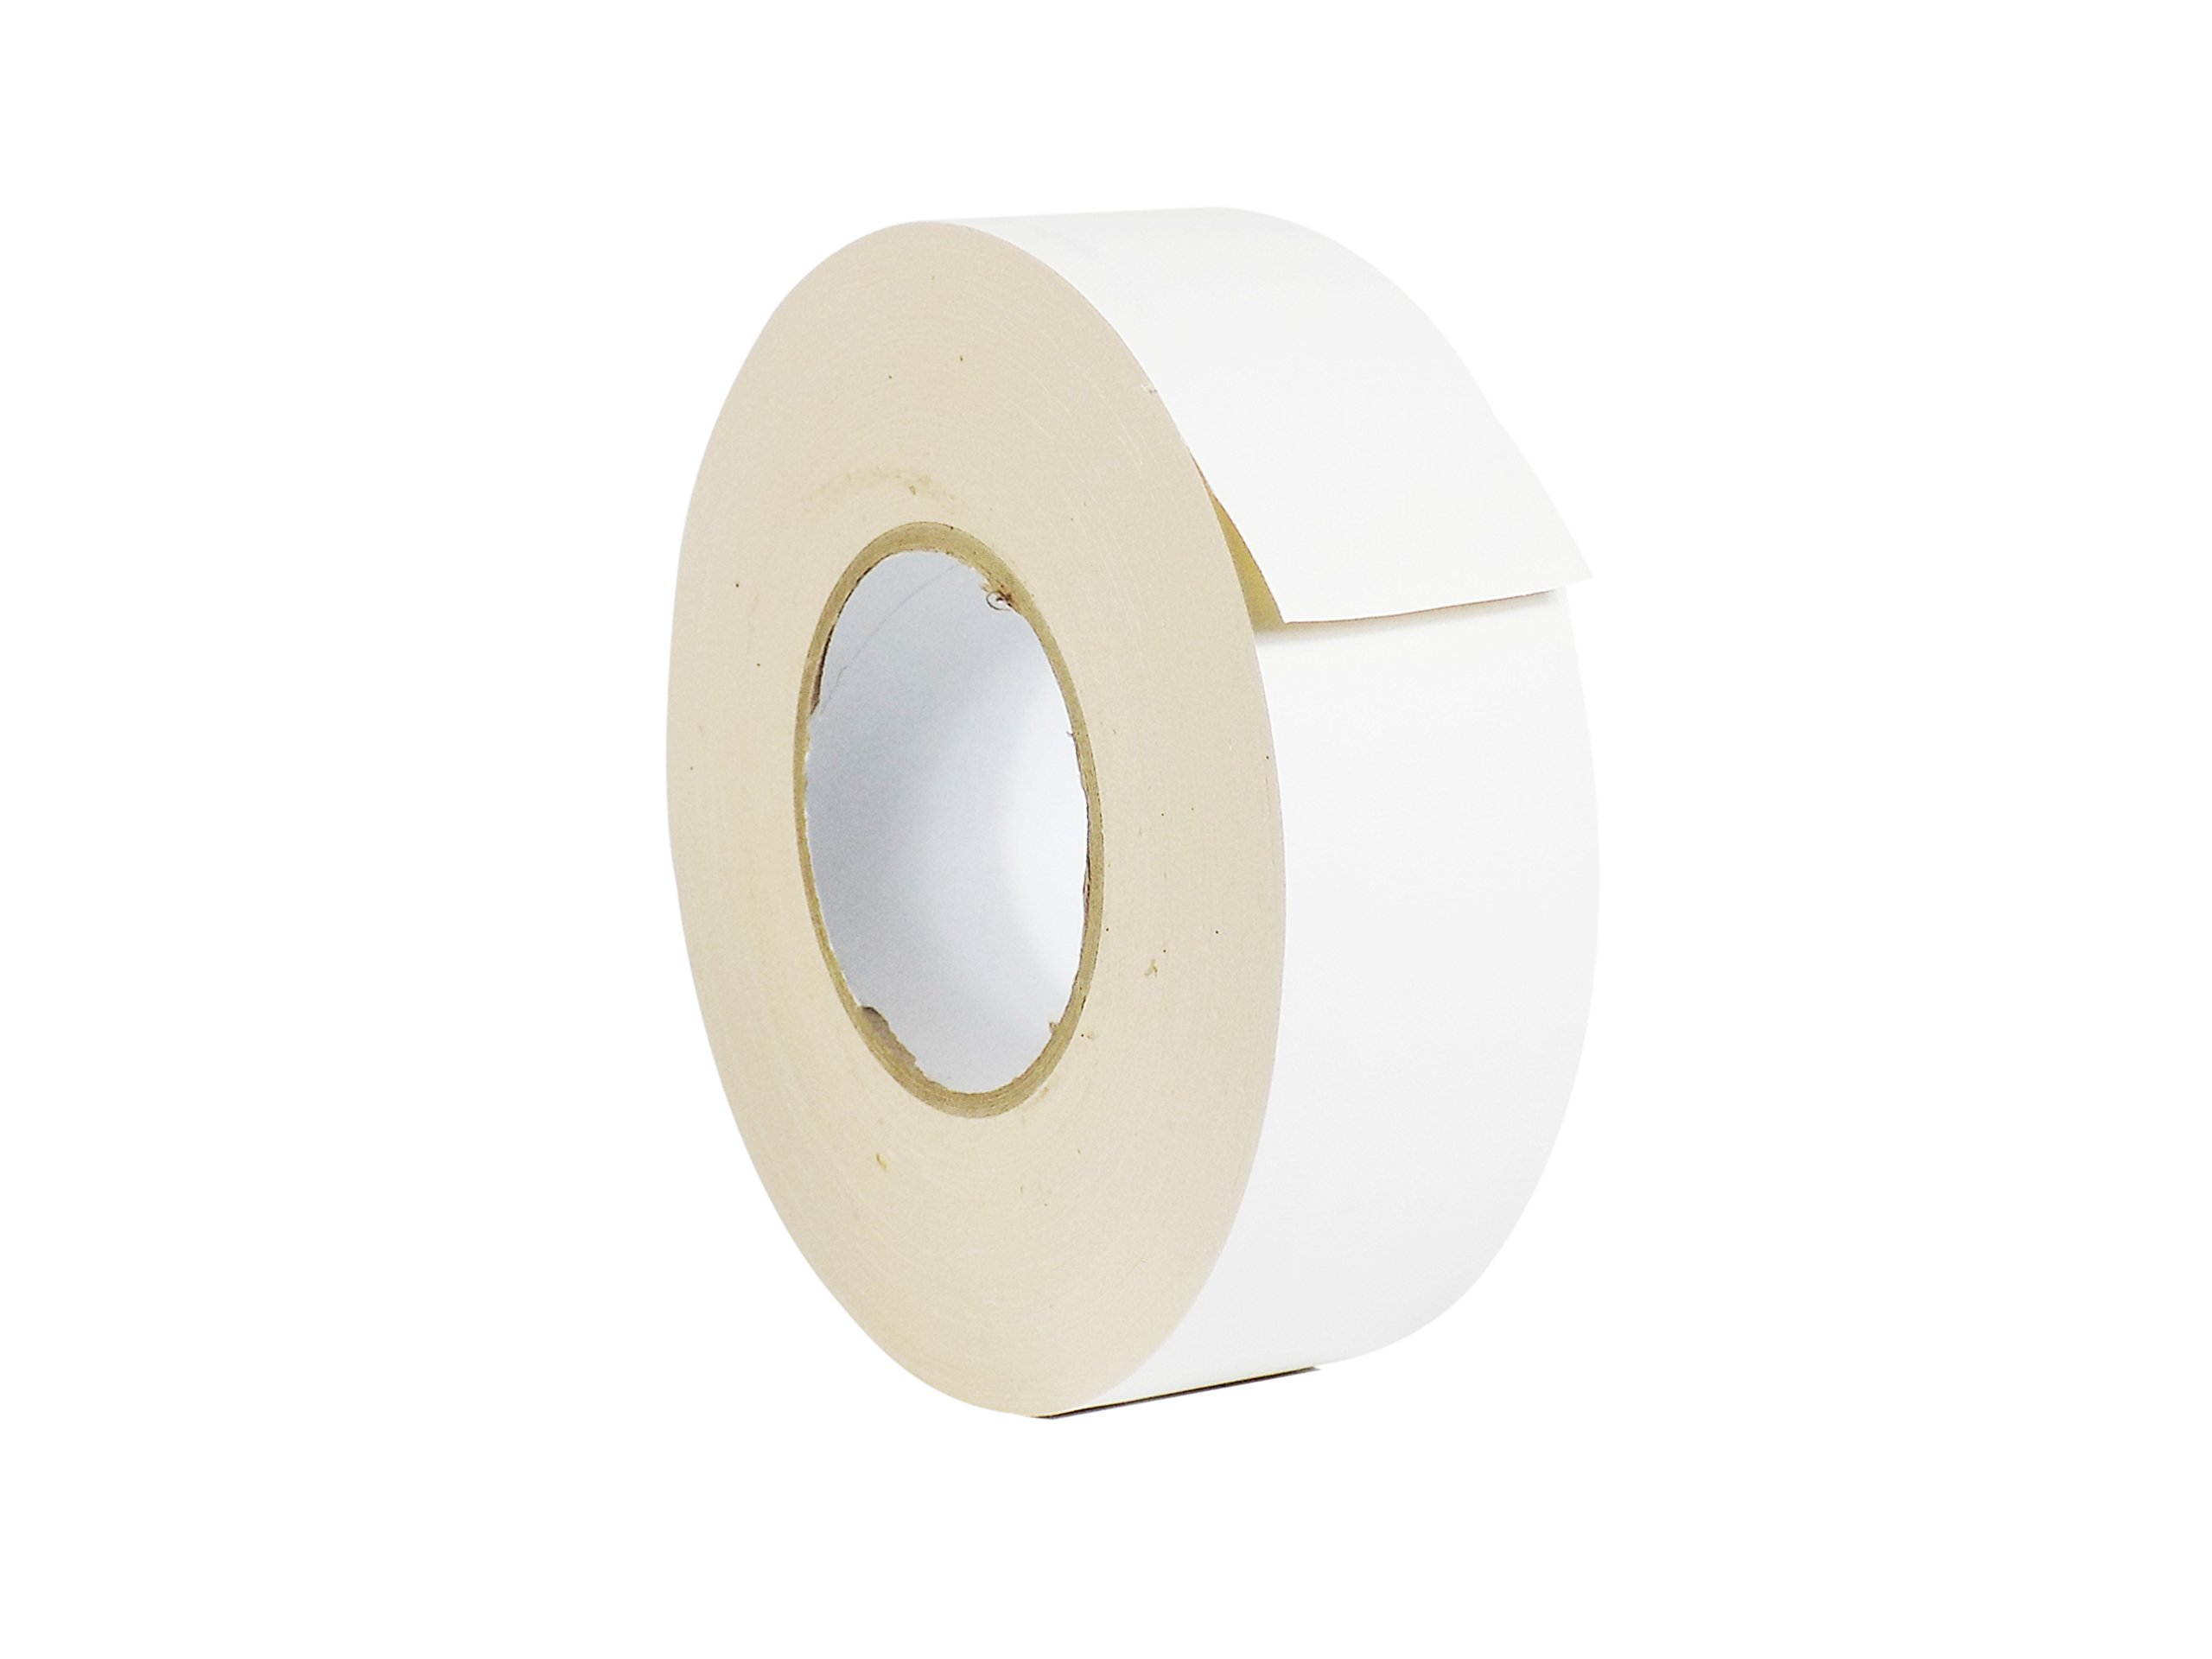 WOD CGT-80 White Gaffer Tape Low Gloss Finish Film, Residue Free, Non Reflective Gaffer, Better than Duct Tape (Available in Multiple Sizes & Colors): 3 in. X 60 Yards (Pack of 16)